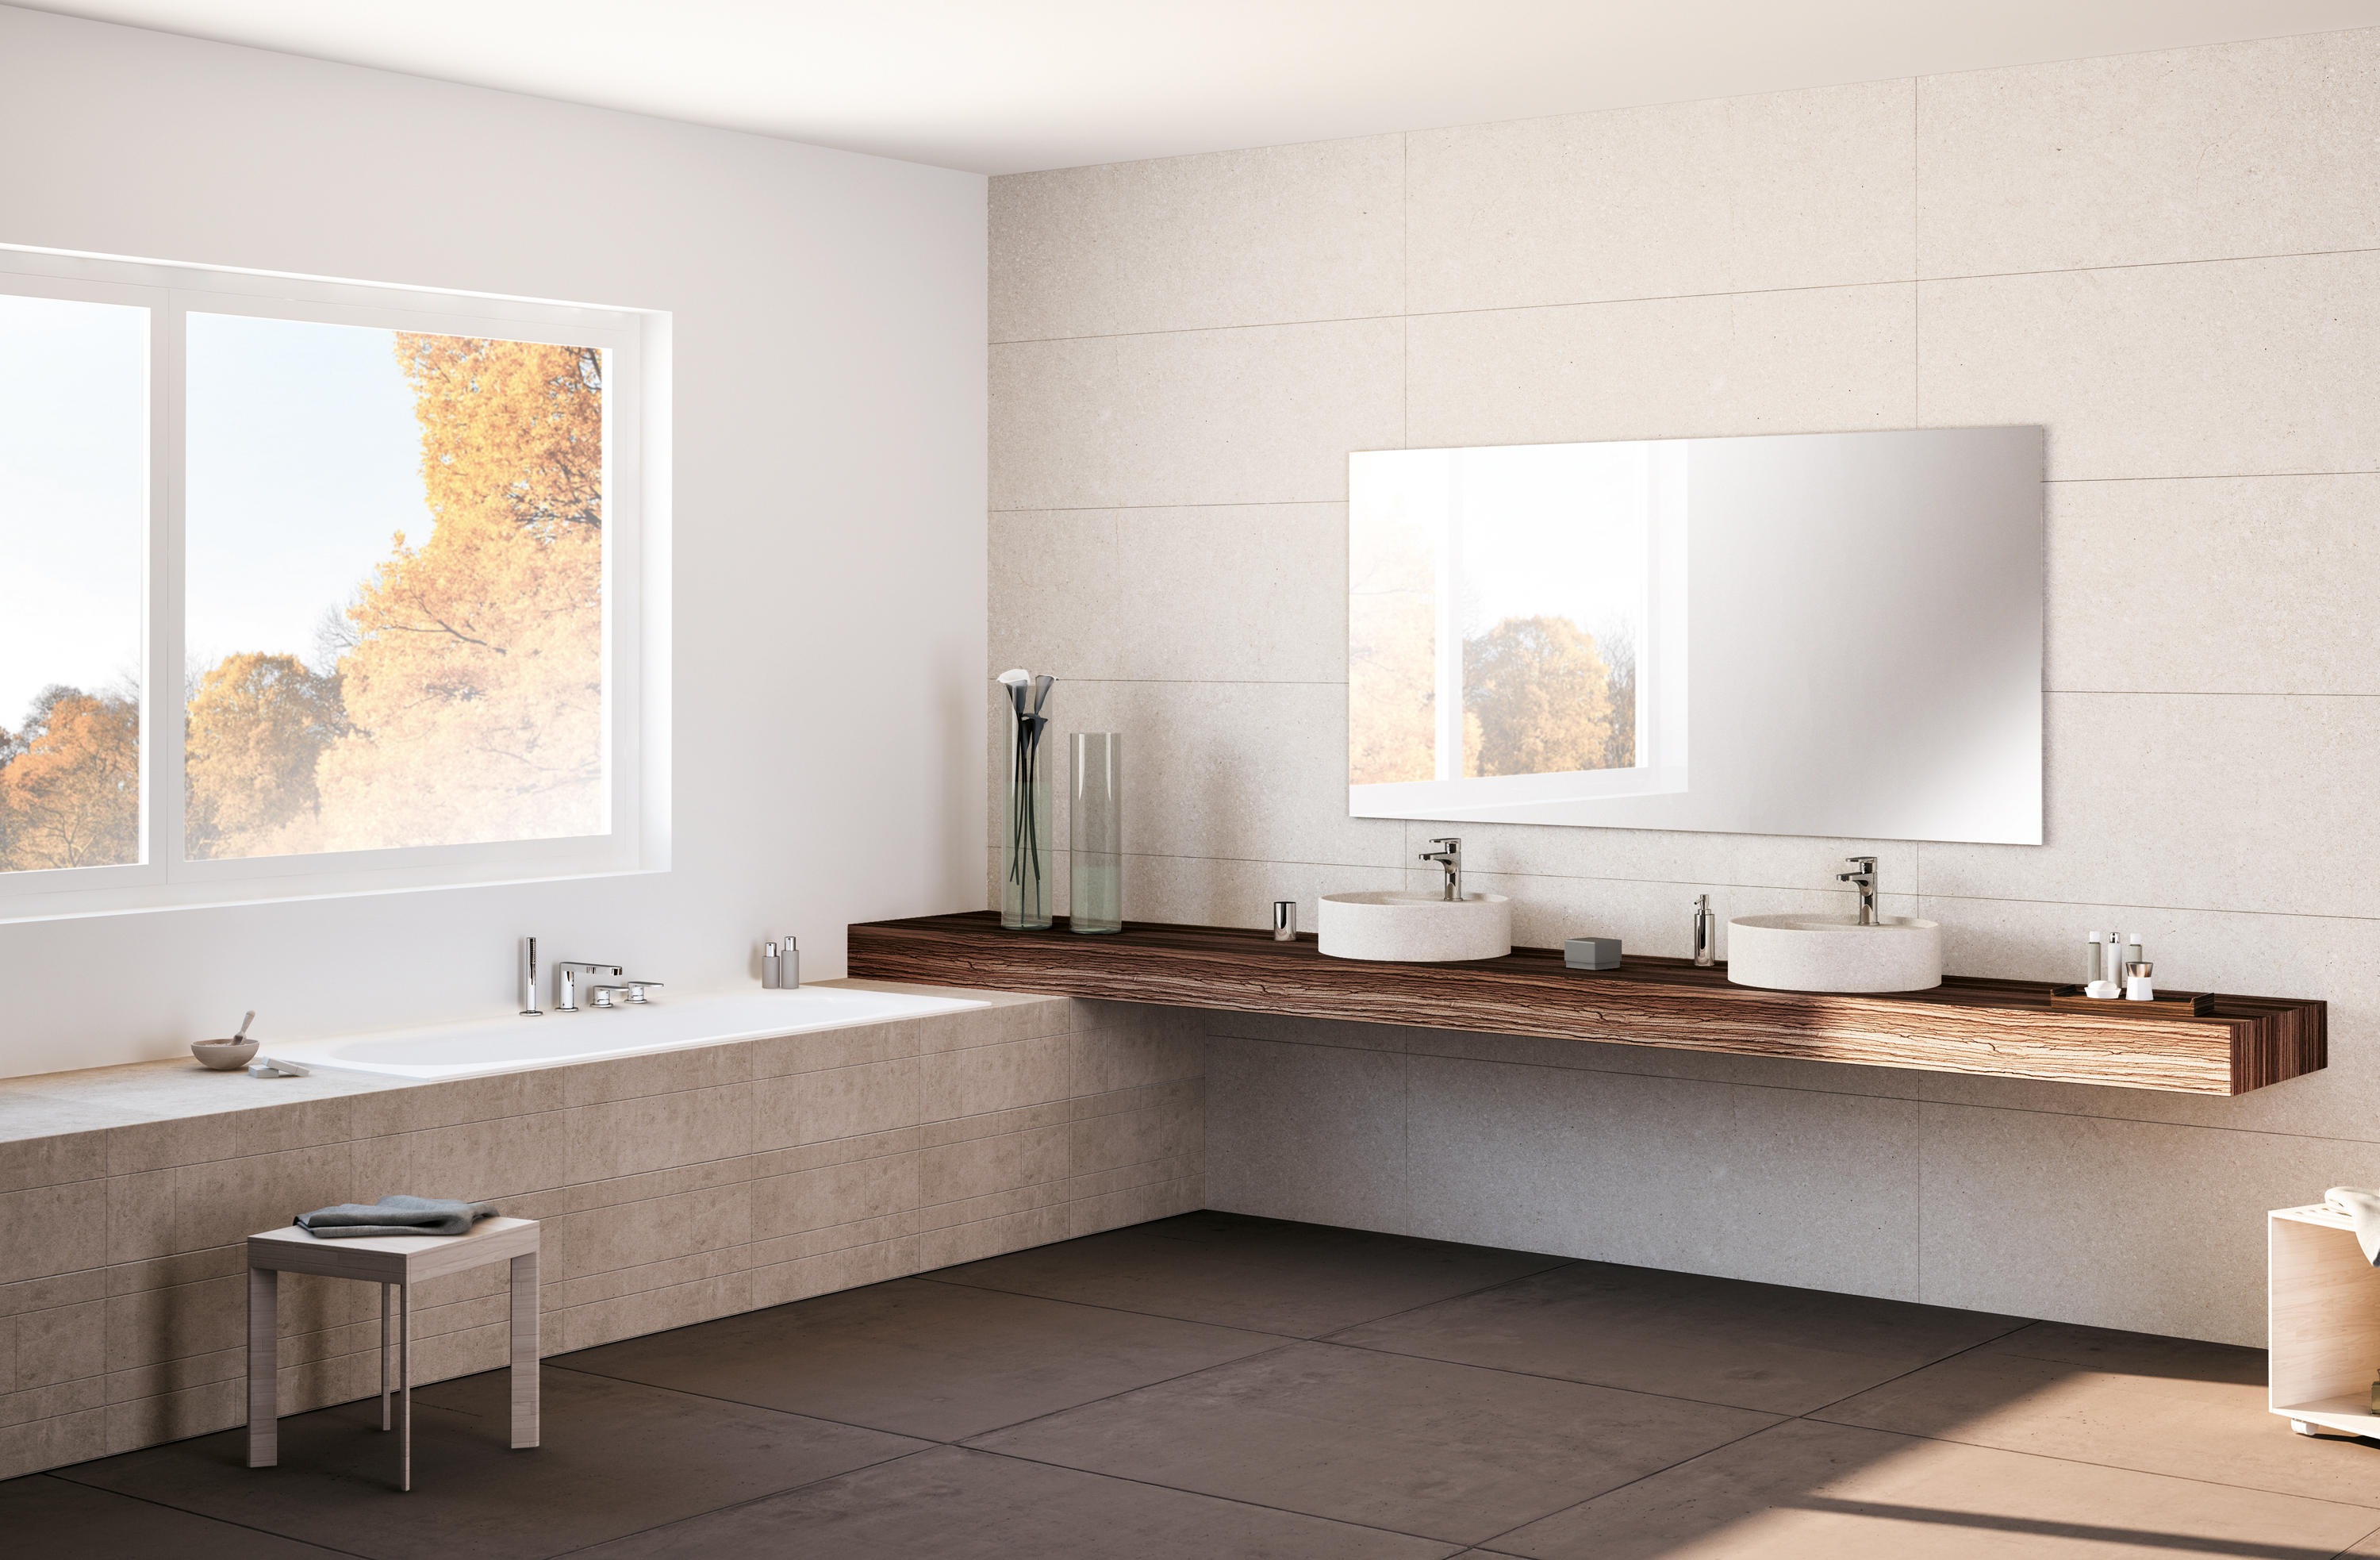 SMILE 64 - Wash-basin taps from Fir Italia | Architonic